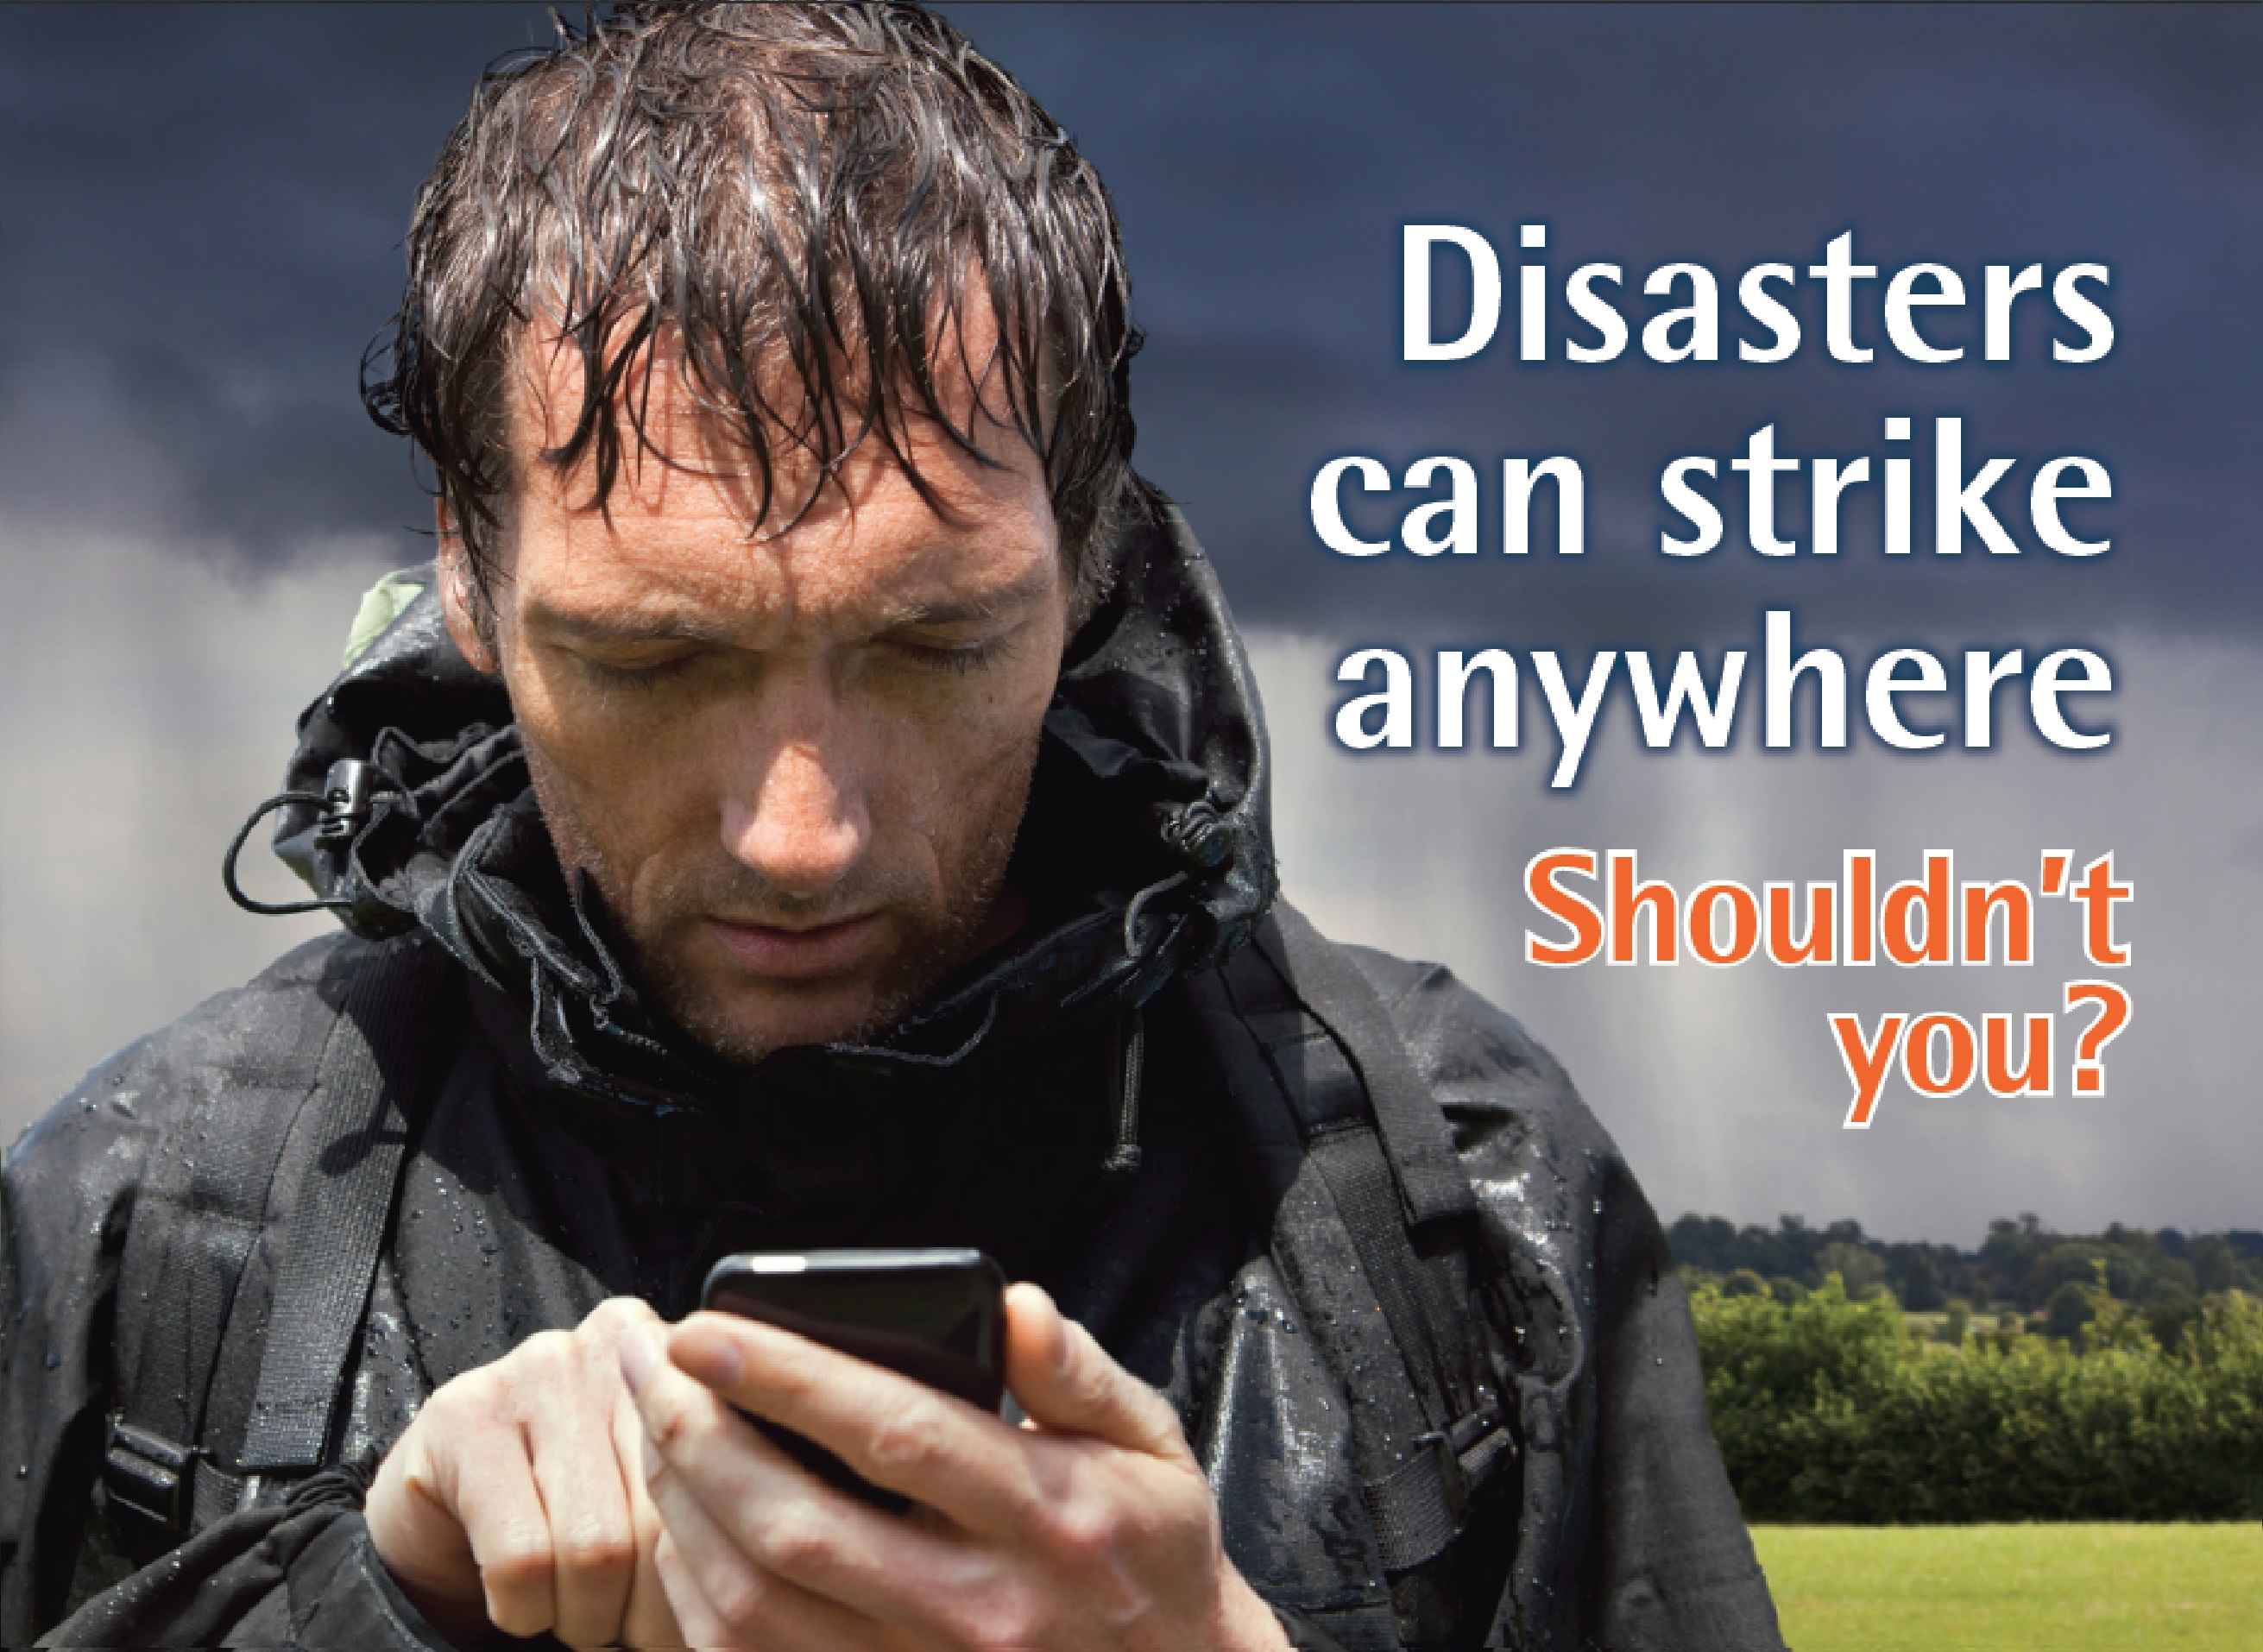 Disasters can strike anywhere. Shouldn't you ?